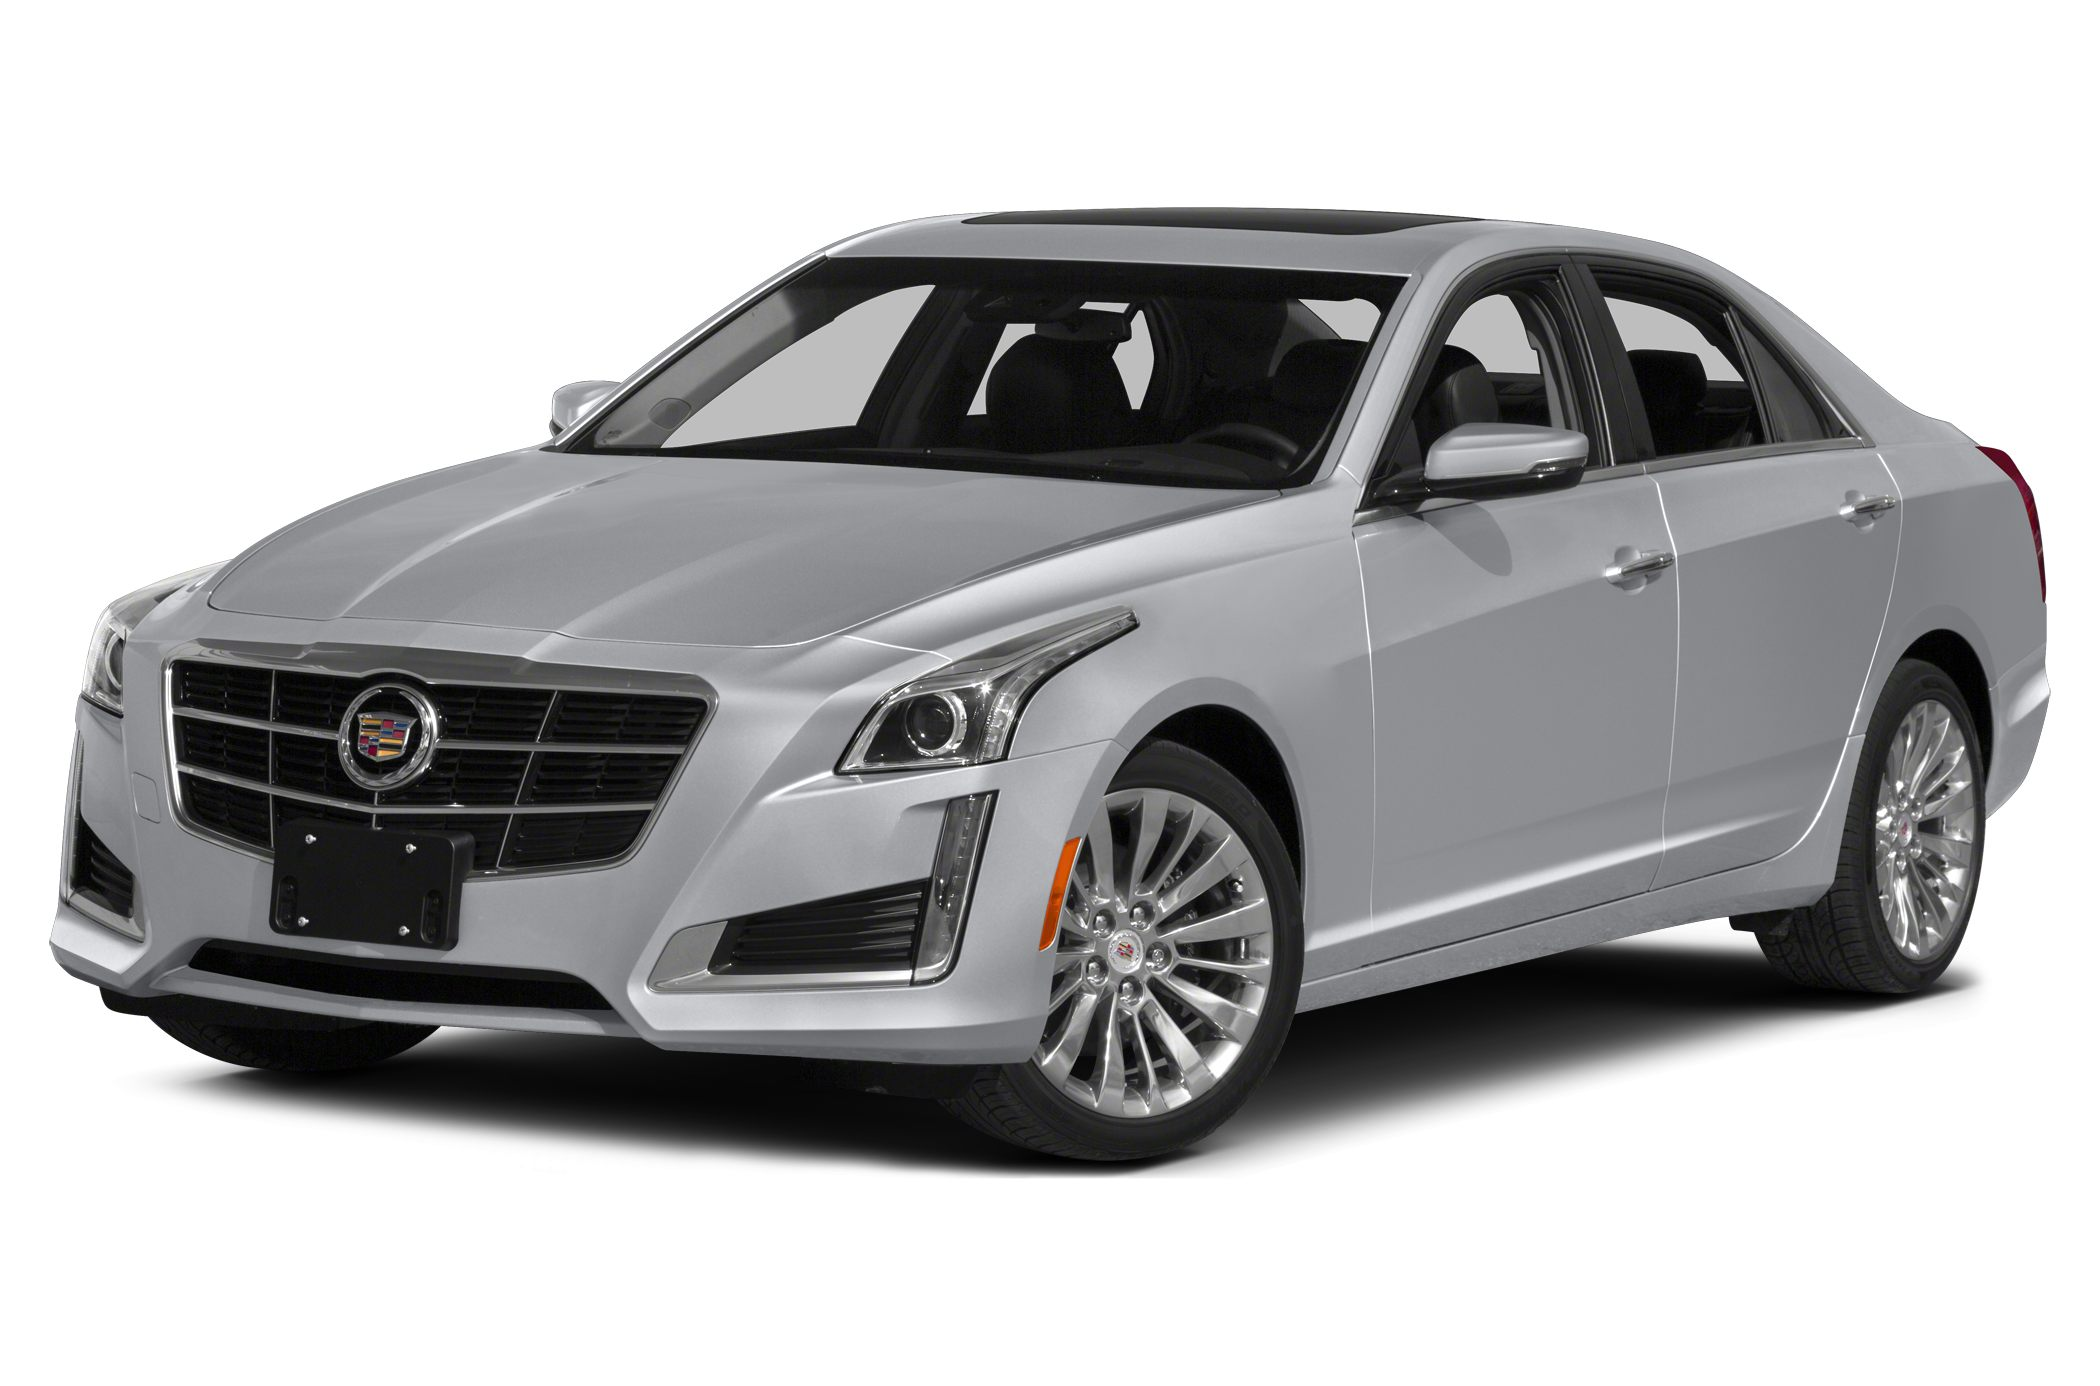 2015 Cadillac CTS 2.0L Turbo Luxury Sedan for sale in Bethesda for $52,710 with 0 miles